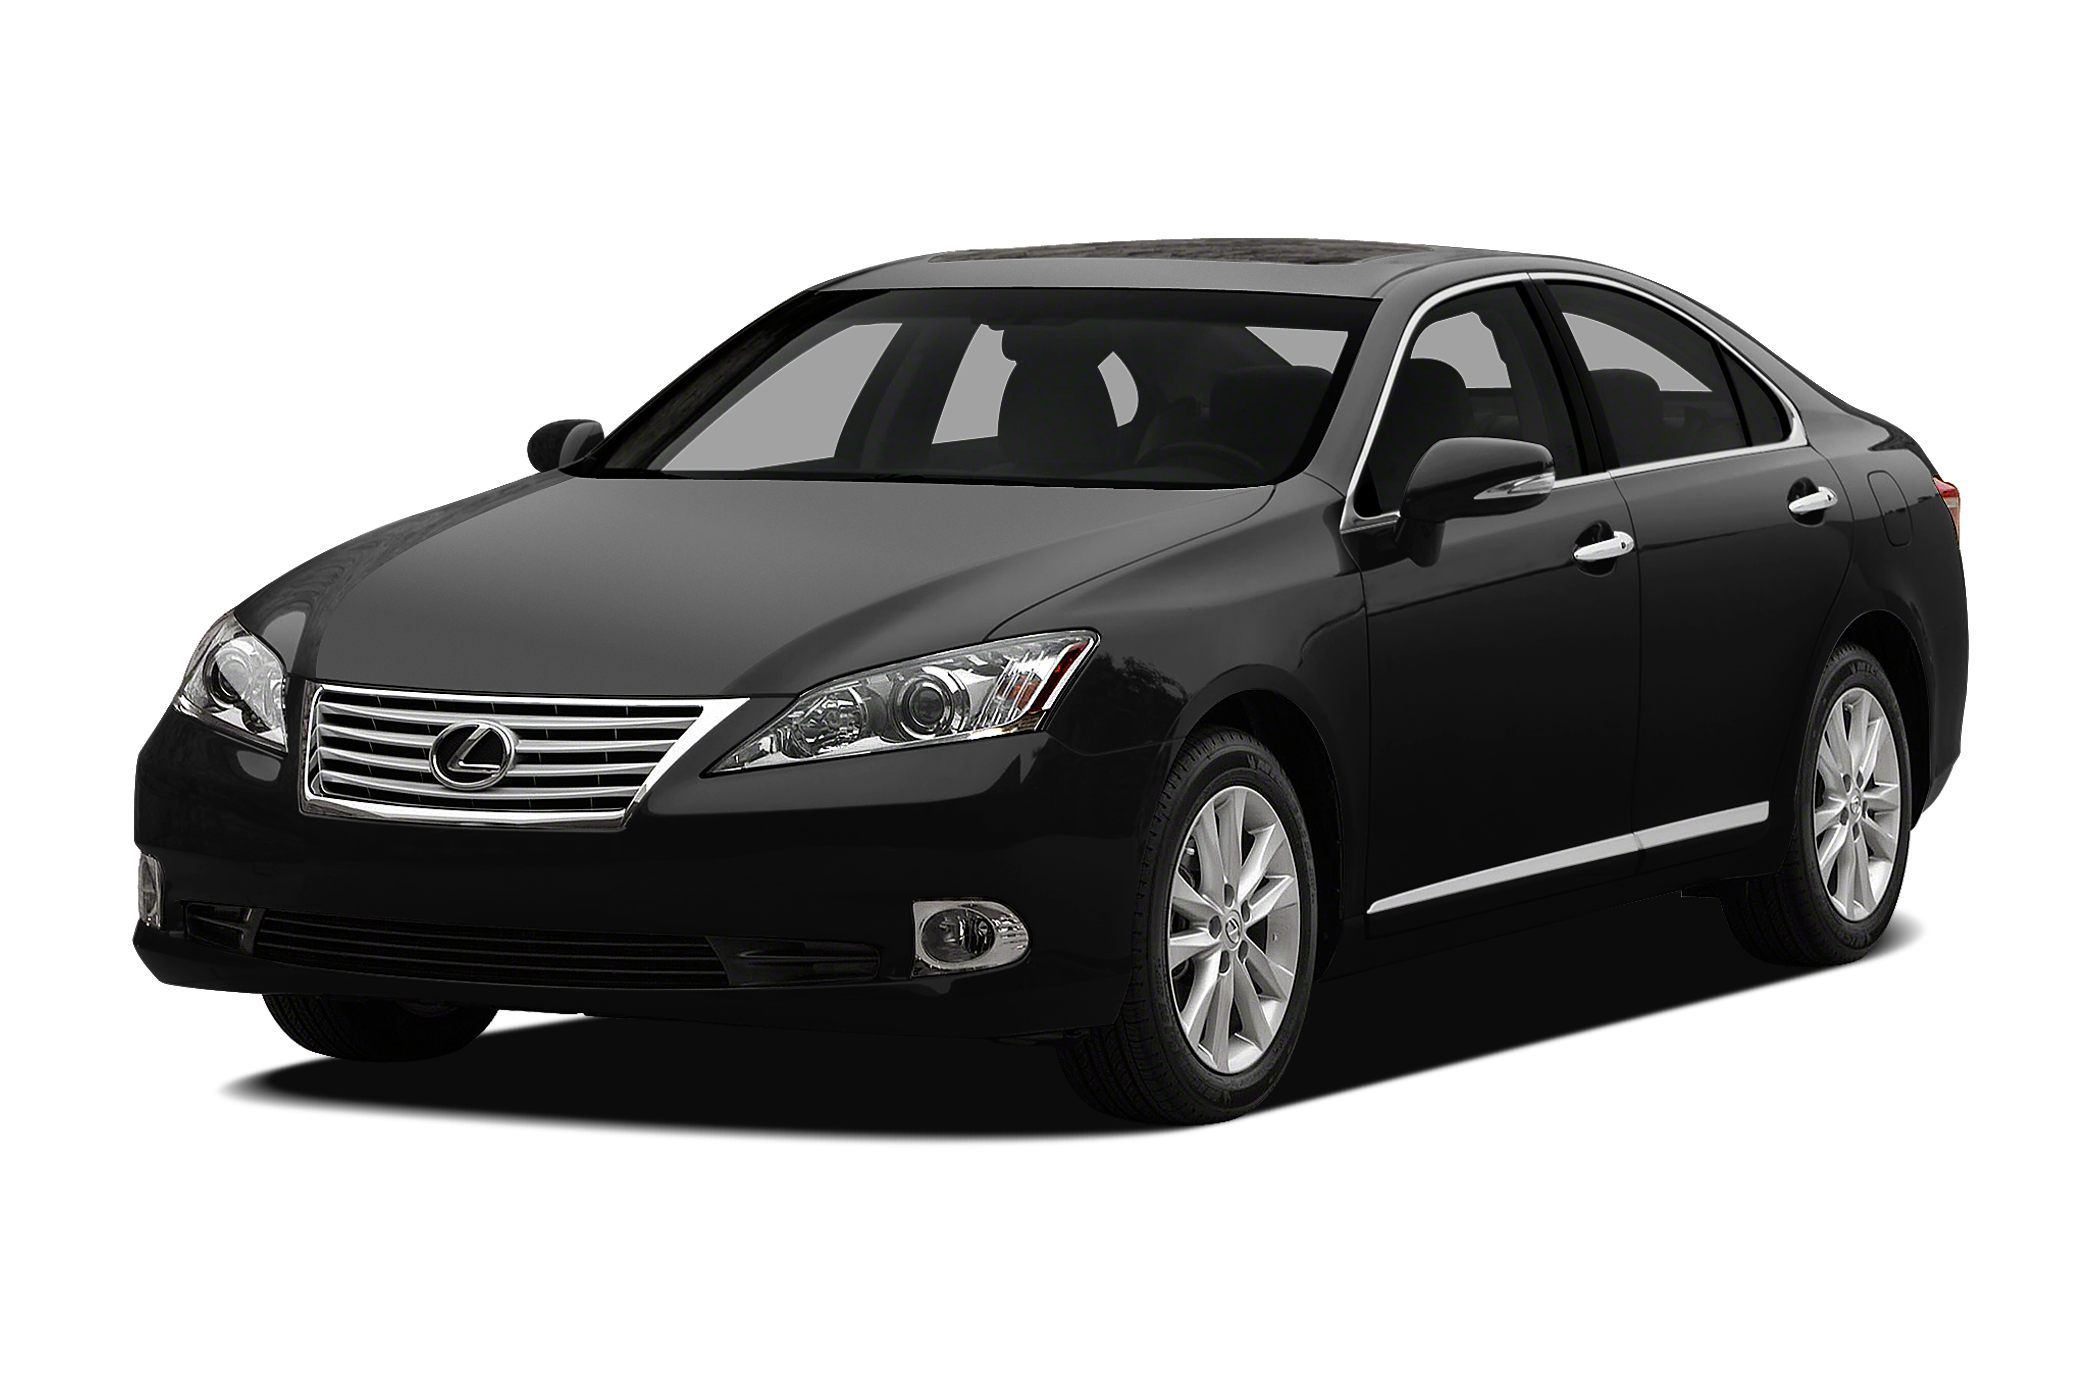 2012 Lexus ES 350 Base Sedan for sale in Shreveport for $27,300 with 28,462 miles.